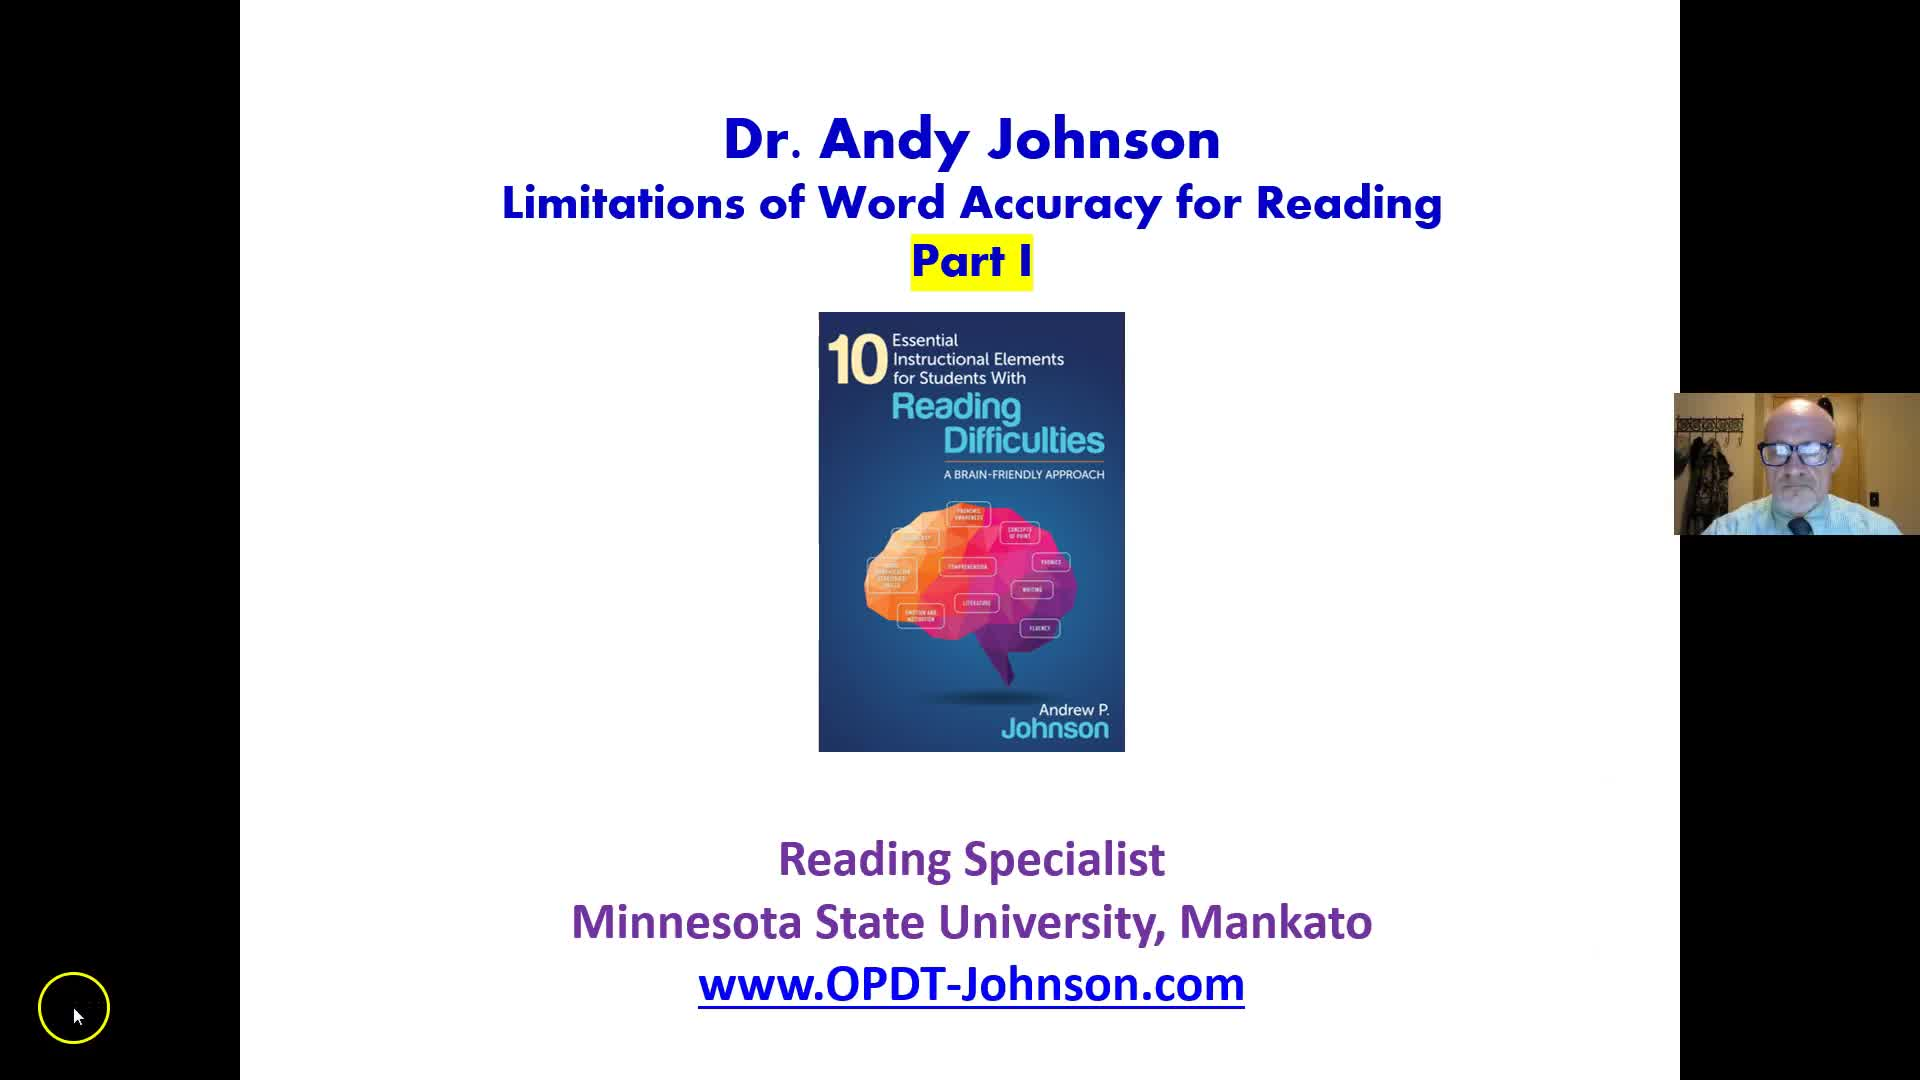 EDUCATIONAL RESEARCH AND WORD ACCURACY